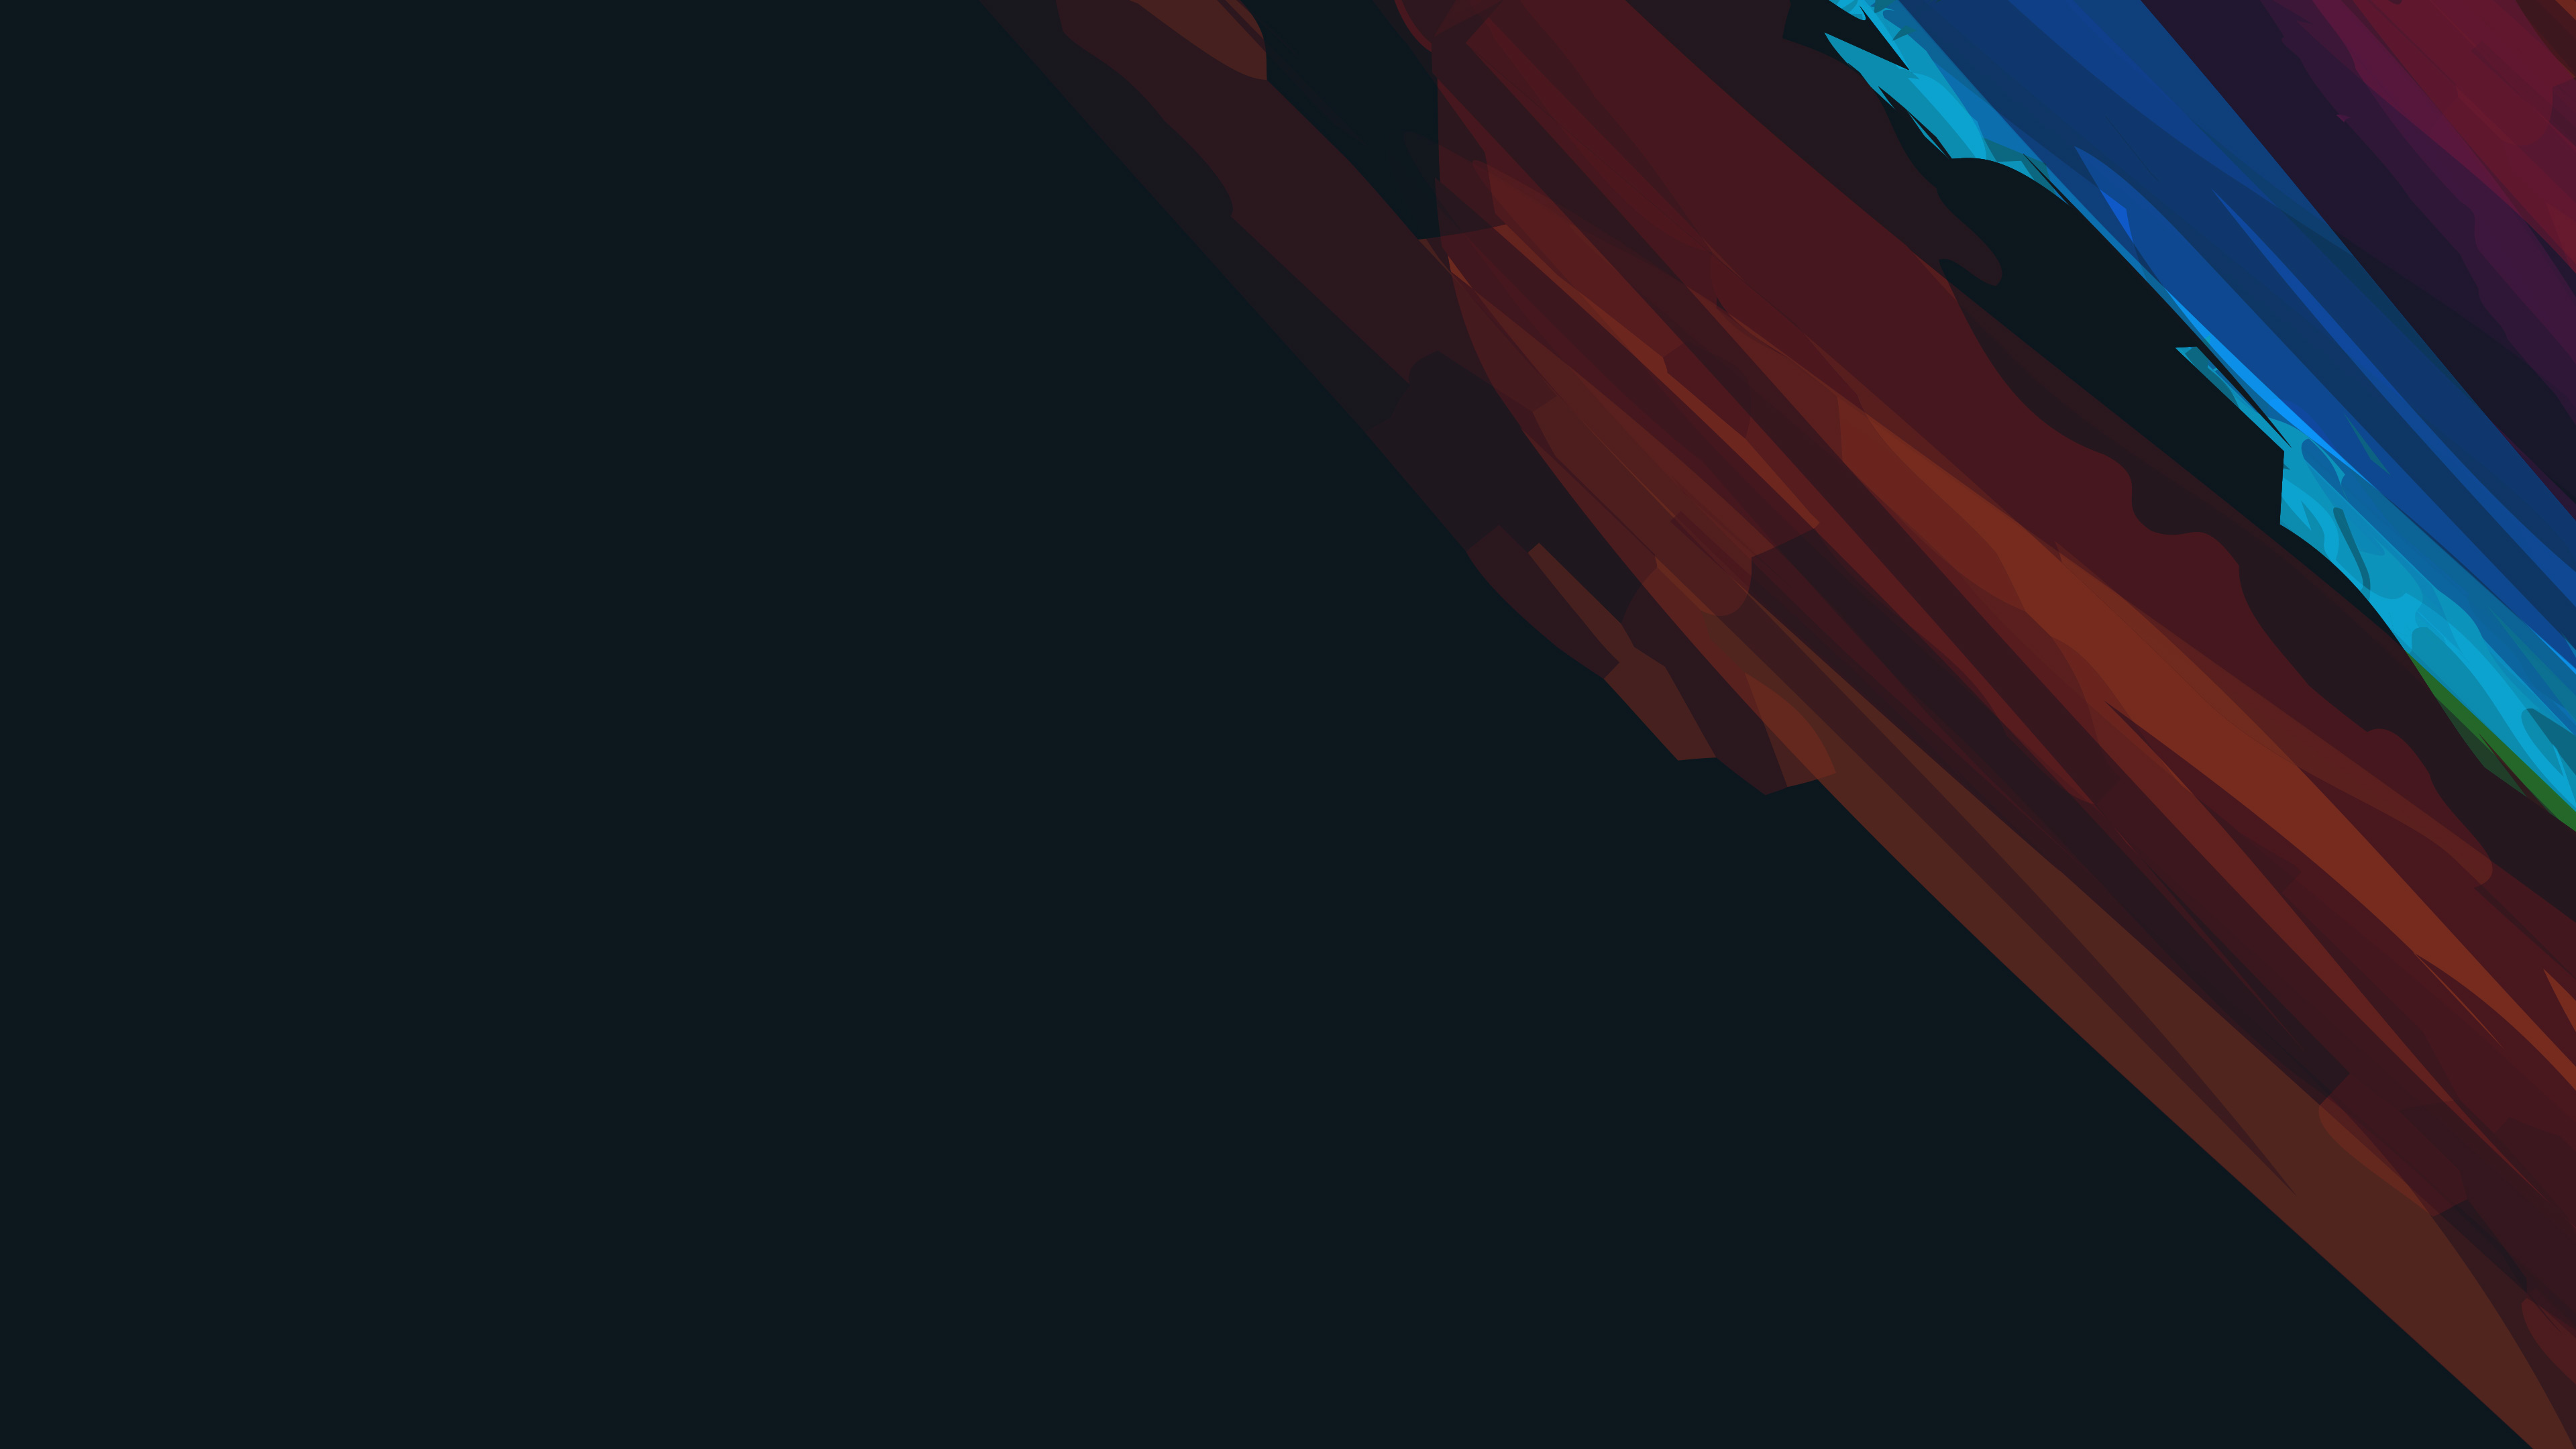 Stroke Minimalism 4k, HD Abstract, 4k Wallpapers, Images ...